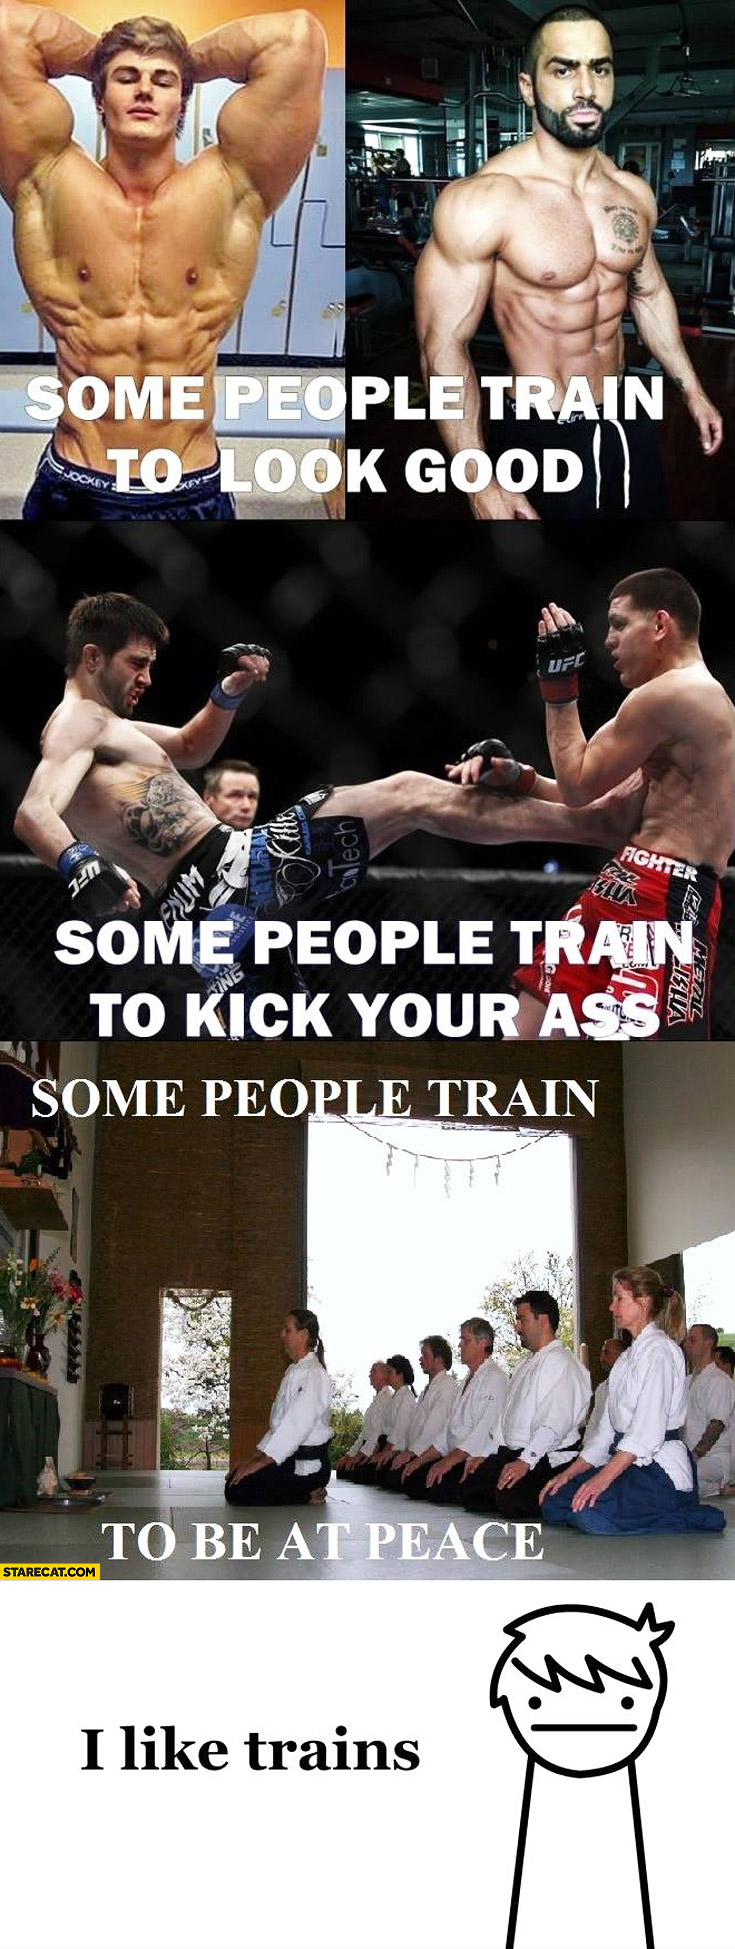 Some people train to look good some to kick ass some to be at peace I like trains